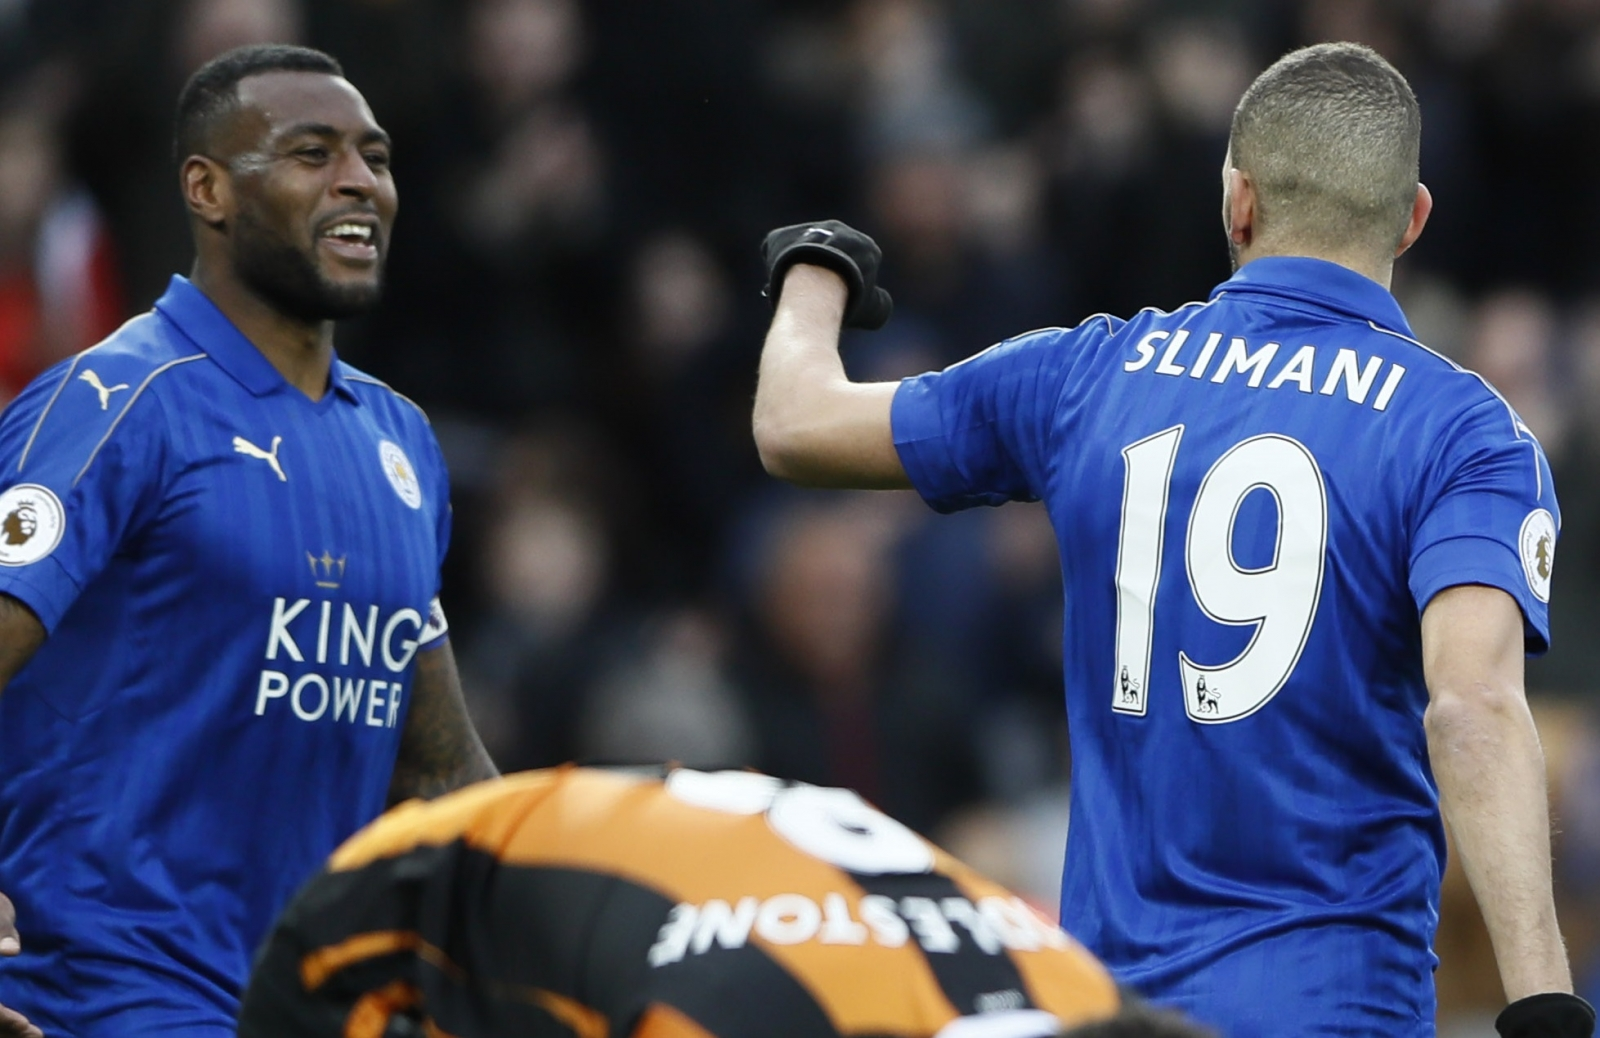 Wes Morgan and Islam Slimani